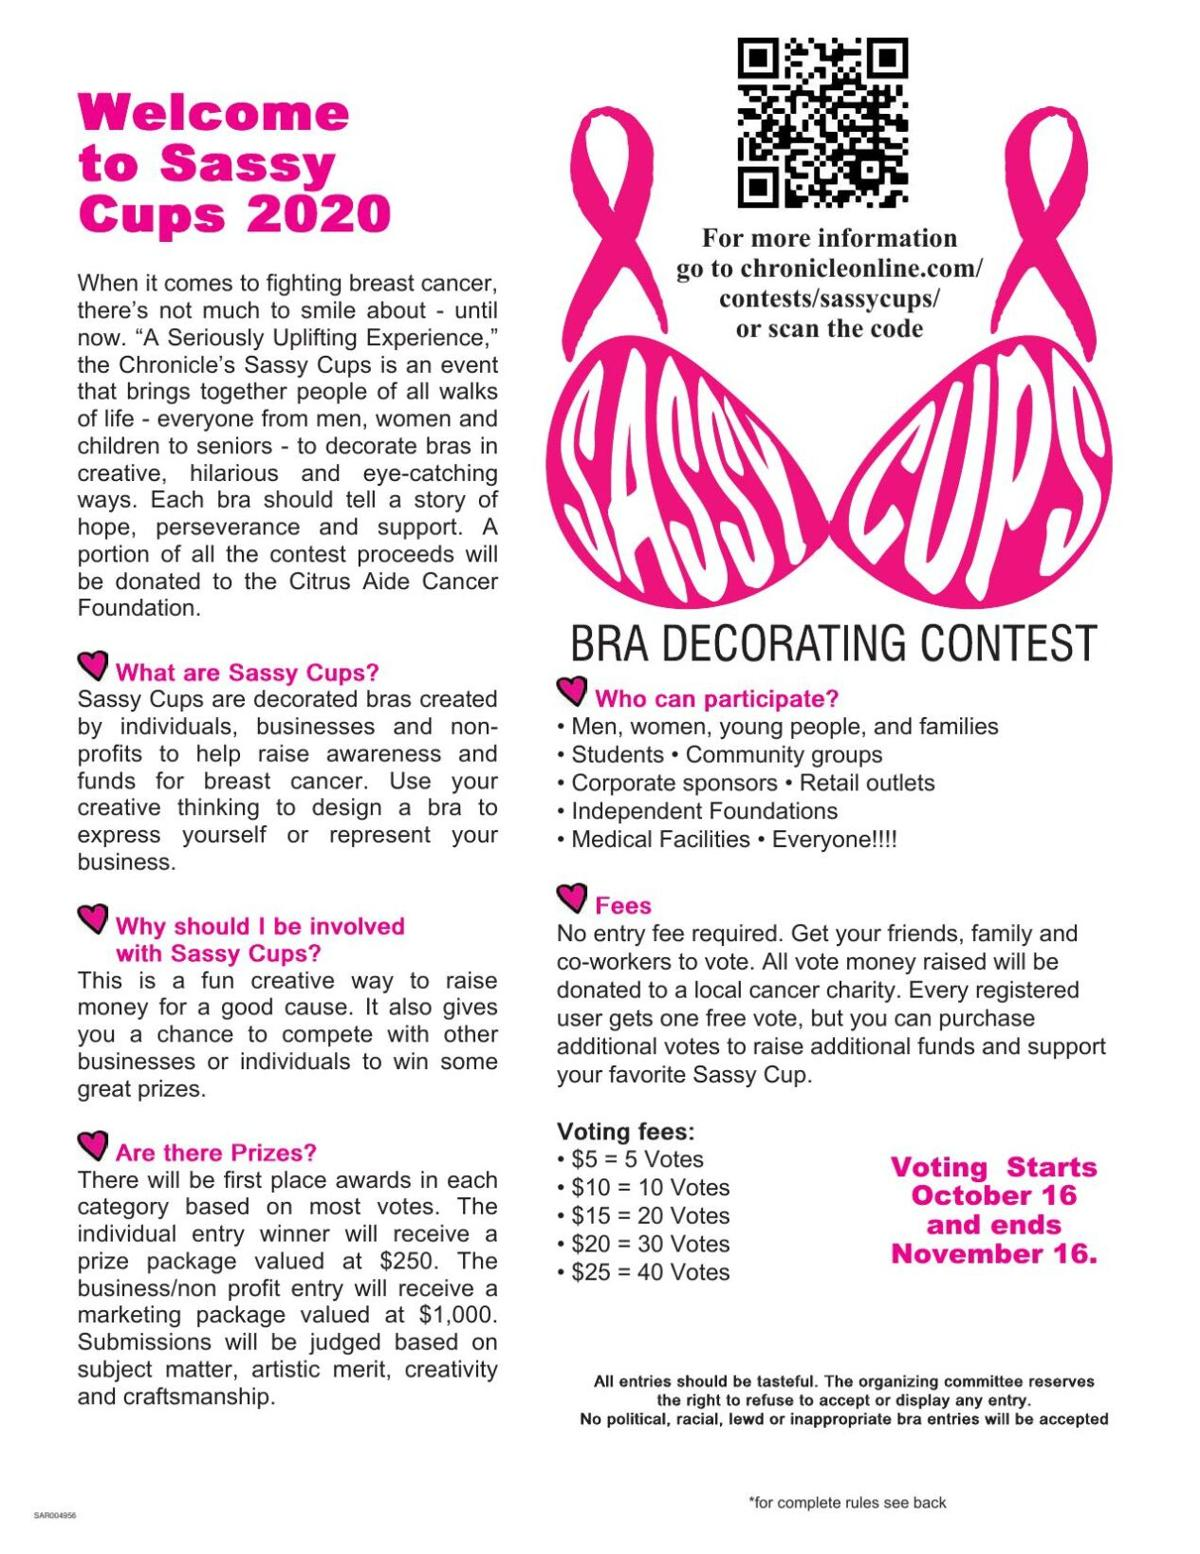 Sassy Cups 2020 Submission Form